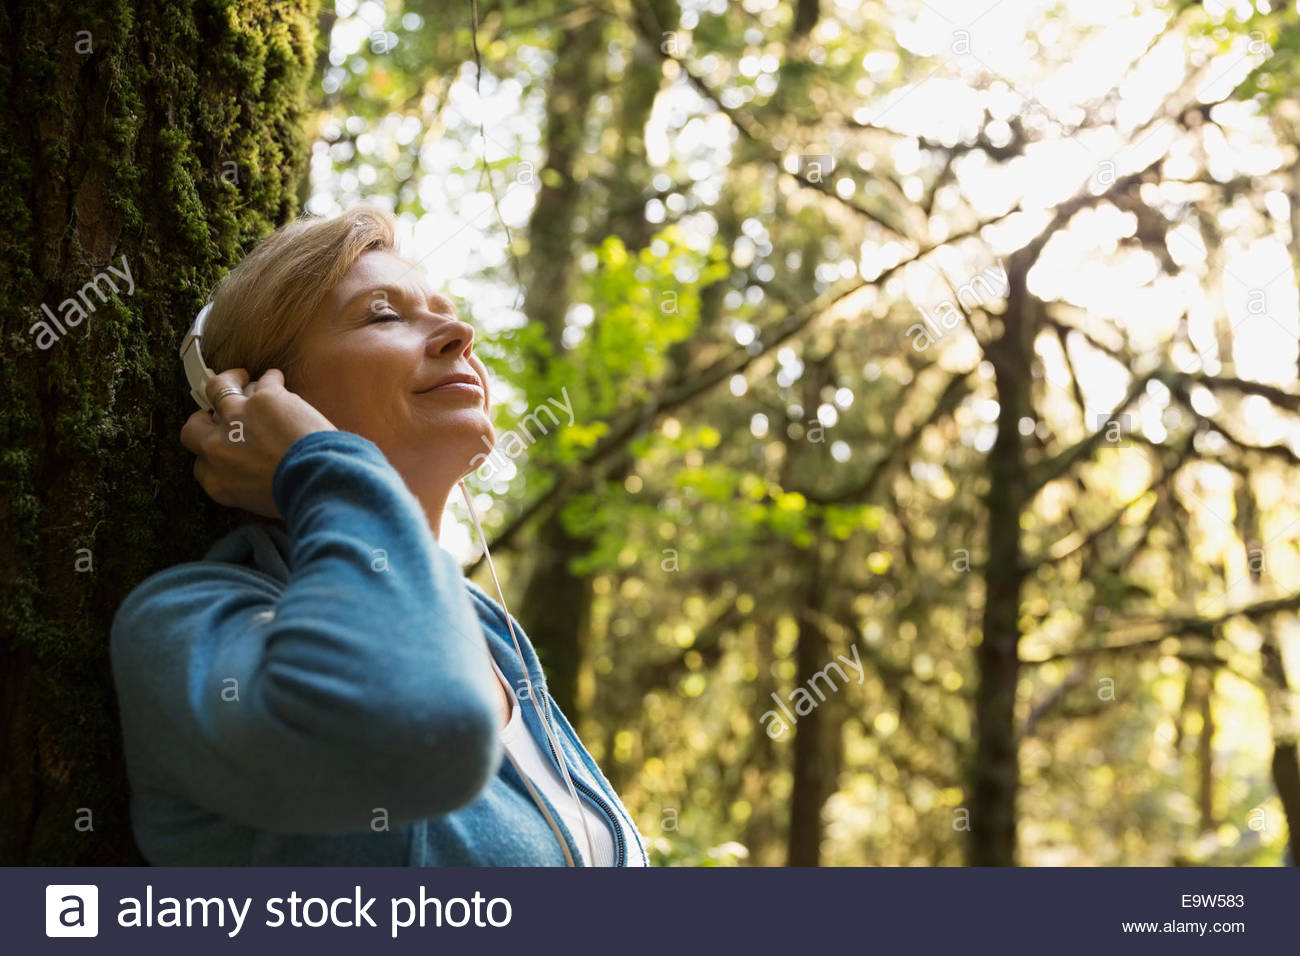 Serene woman listening to music in woods Photo Stock